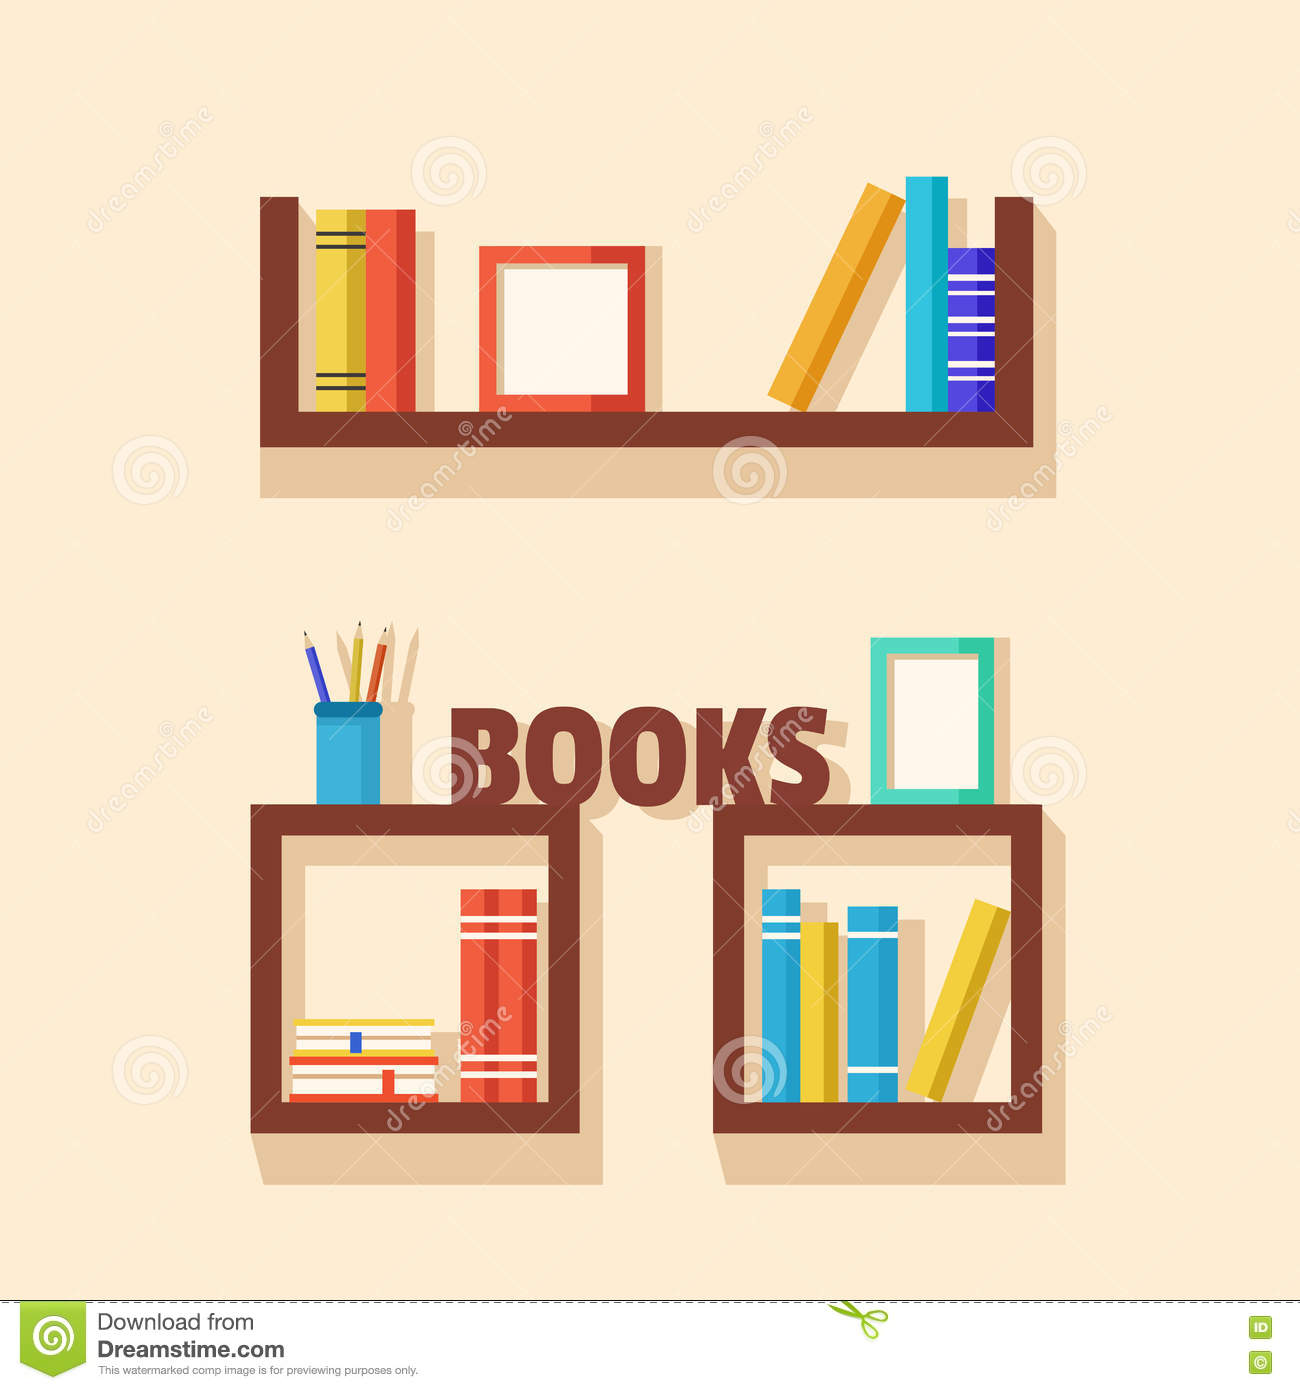 Collection Of Paper Books Wooden Bookshelf Vector Flat Illustration